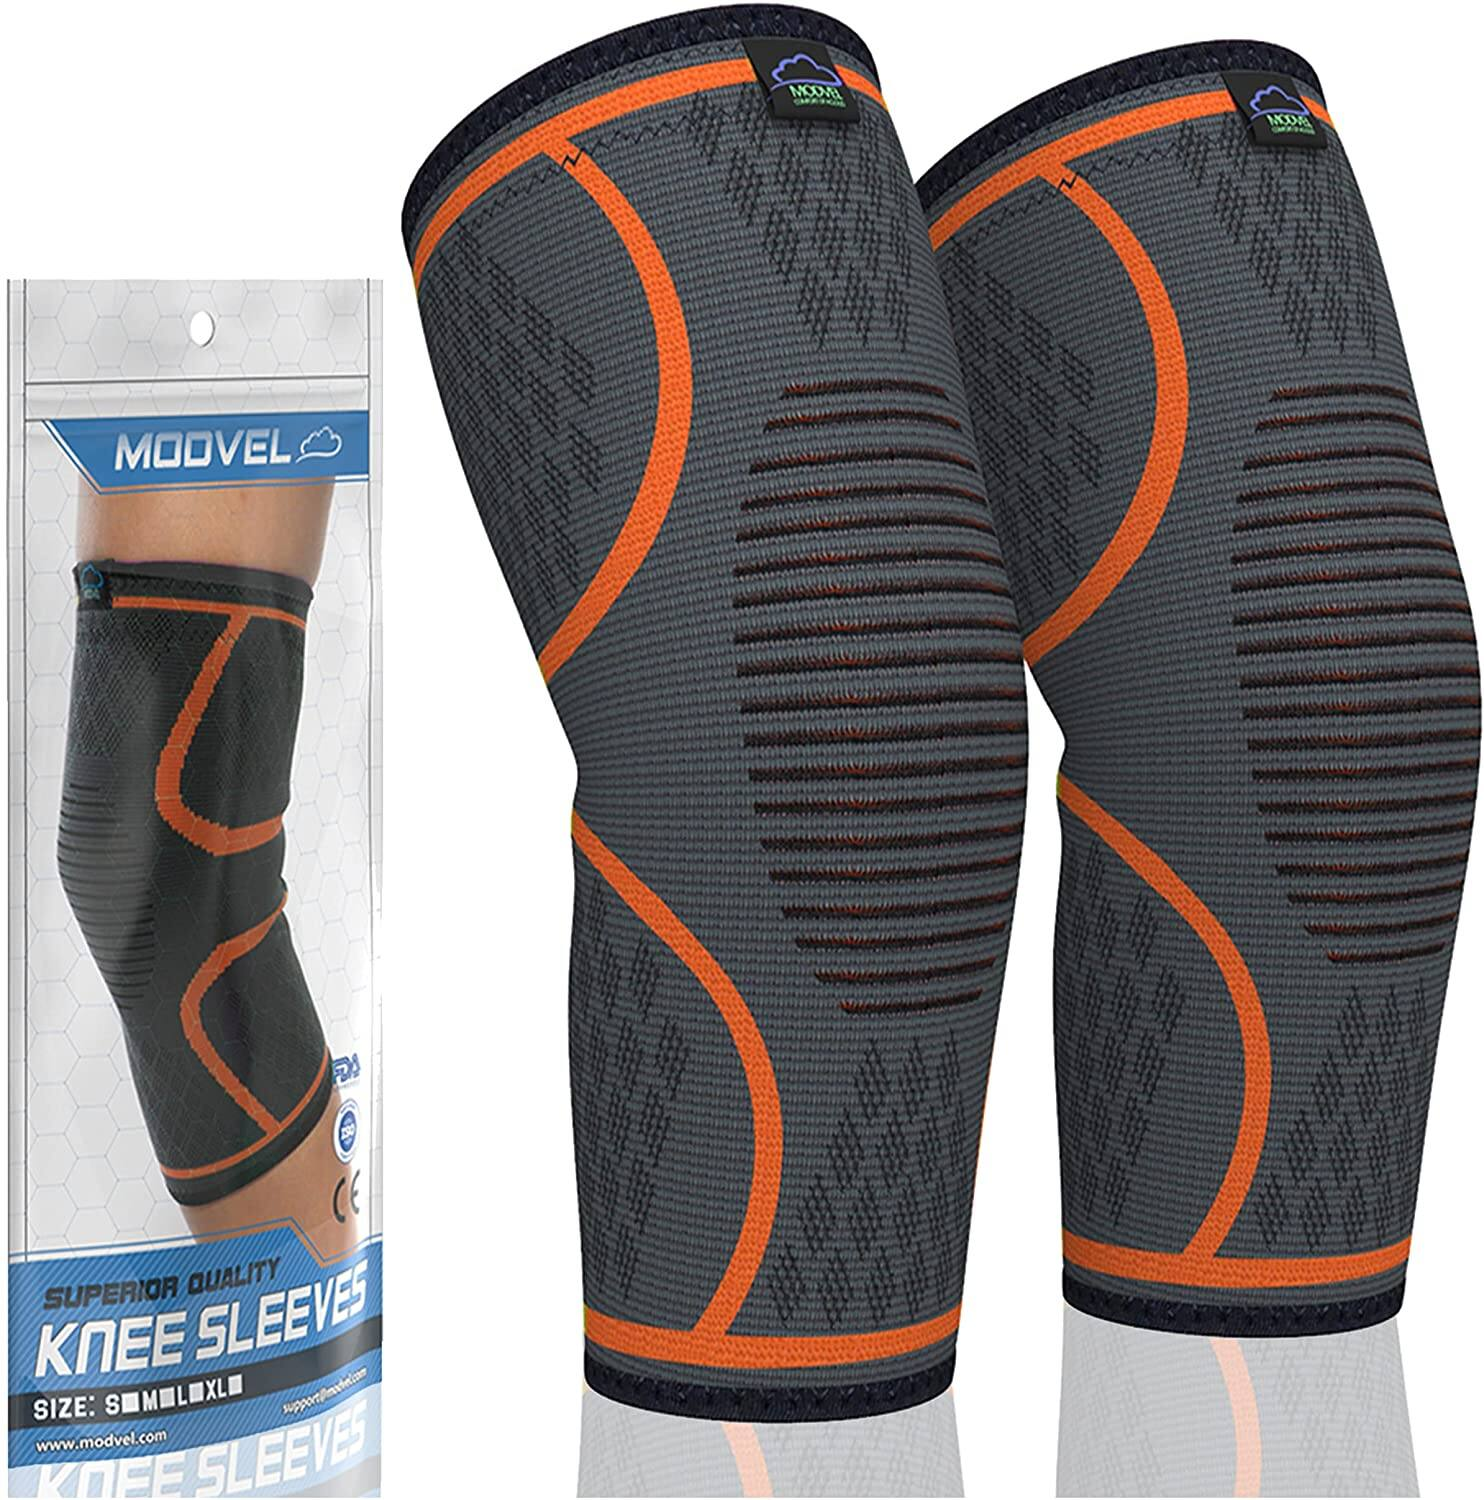 Modvel Compression Knee and Ankle Sleeves: Knee from $9.71, Ankle $10.40 at Amazon $9.83